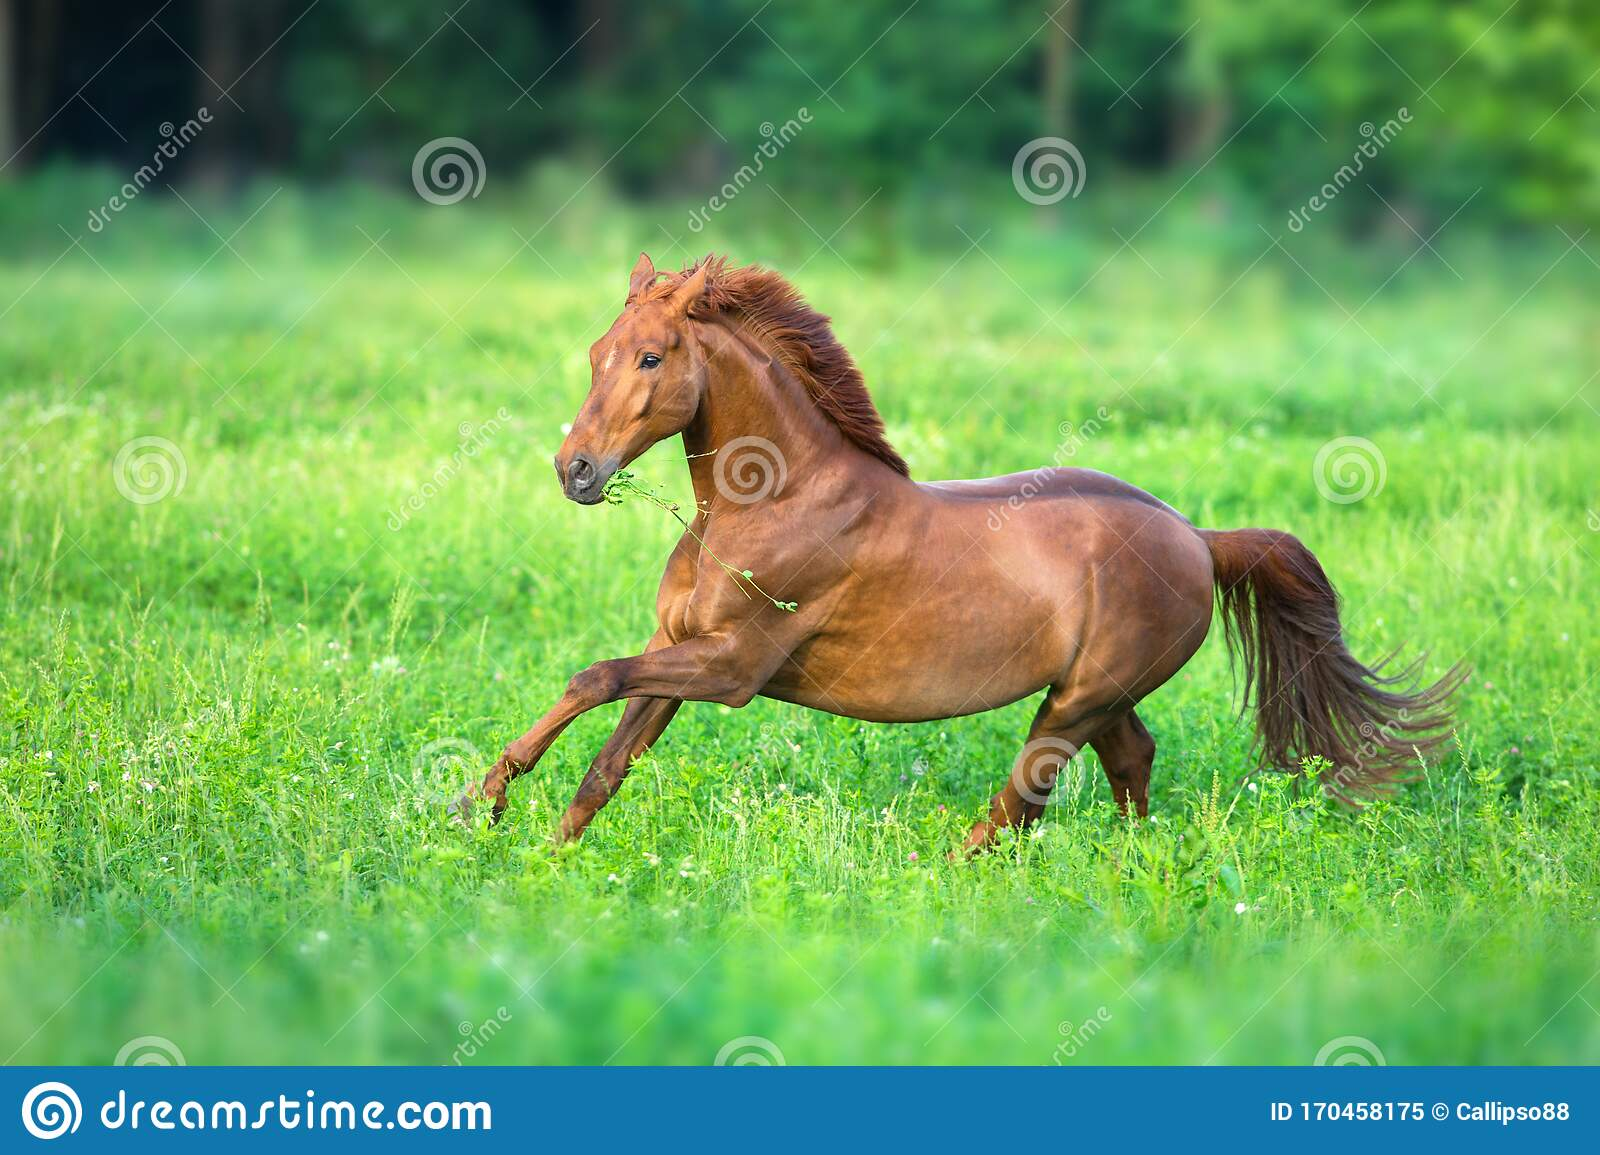 3 158 Red Horse Run Photos Free Royalty Free Stock Photos From Dreamstime